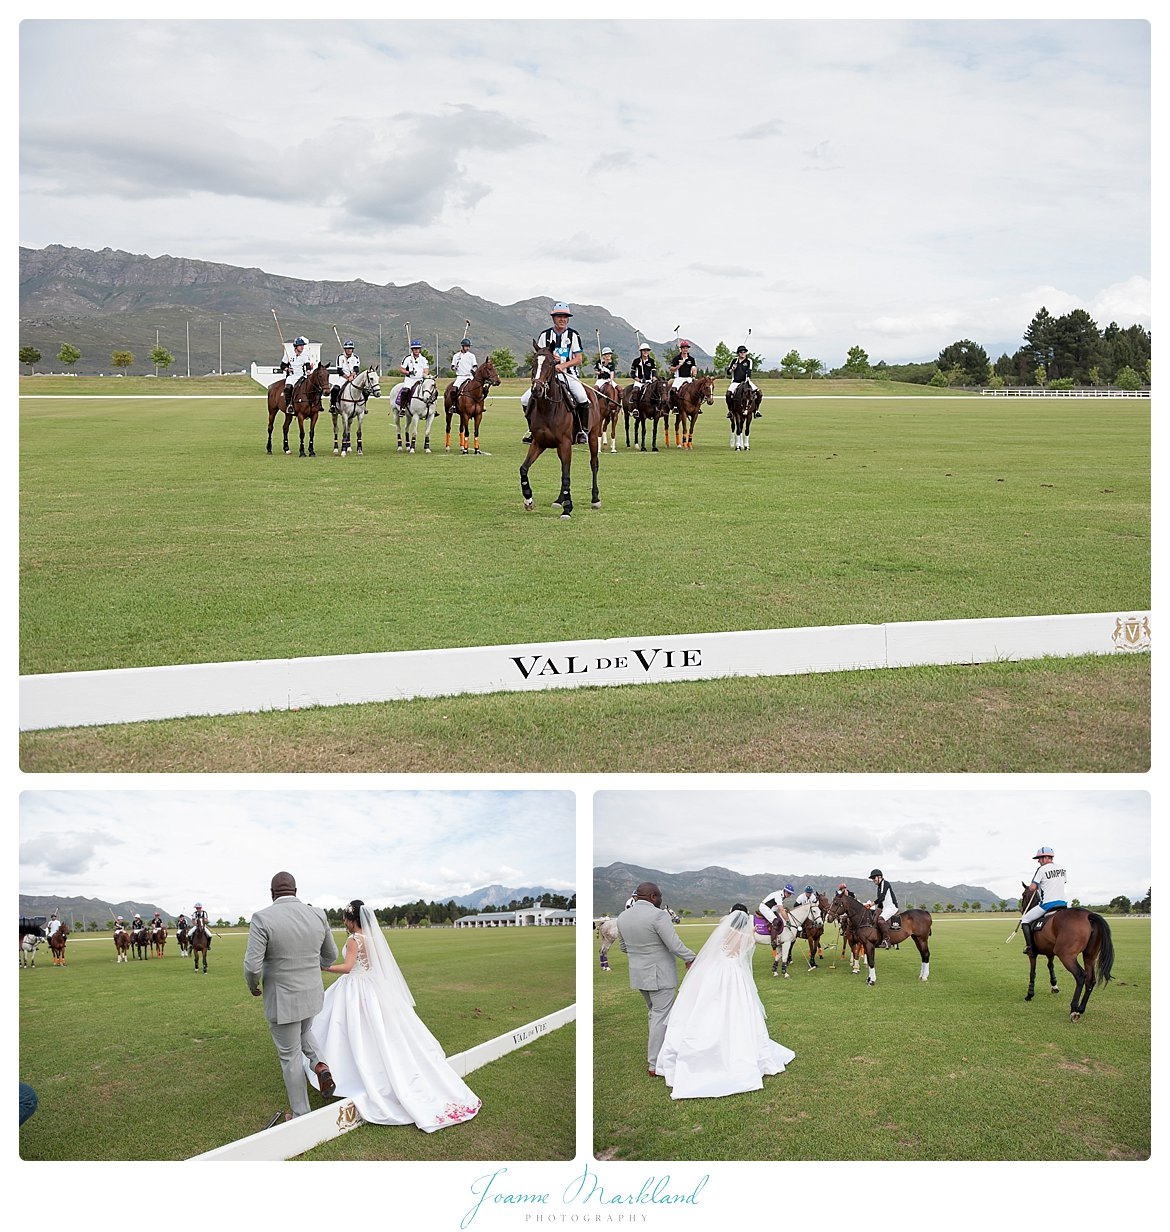 Val_de_vie_wedding_joanne_markland_photography_paarl-032